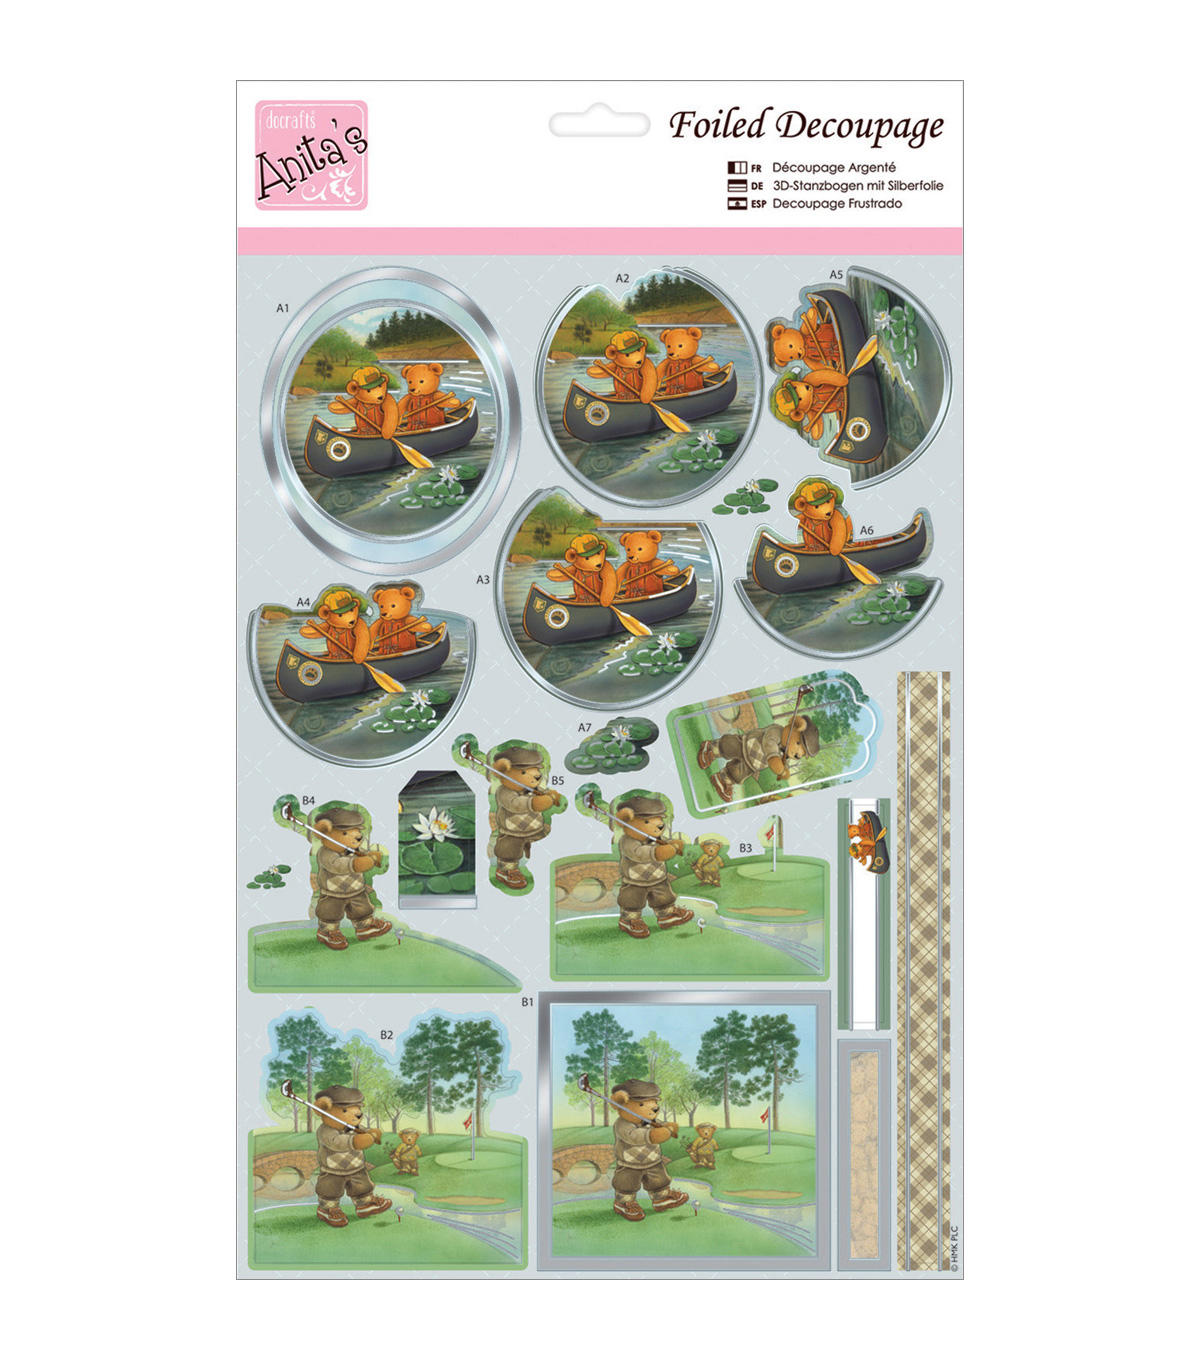 Anita's A4 Foiled Decoupage Sheet-Teddybear Activities